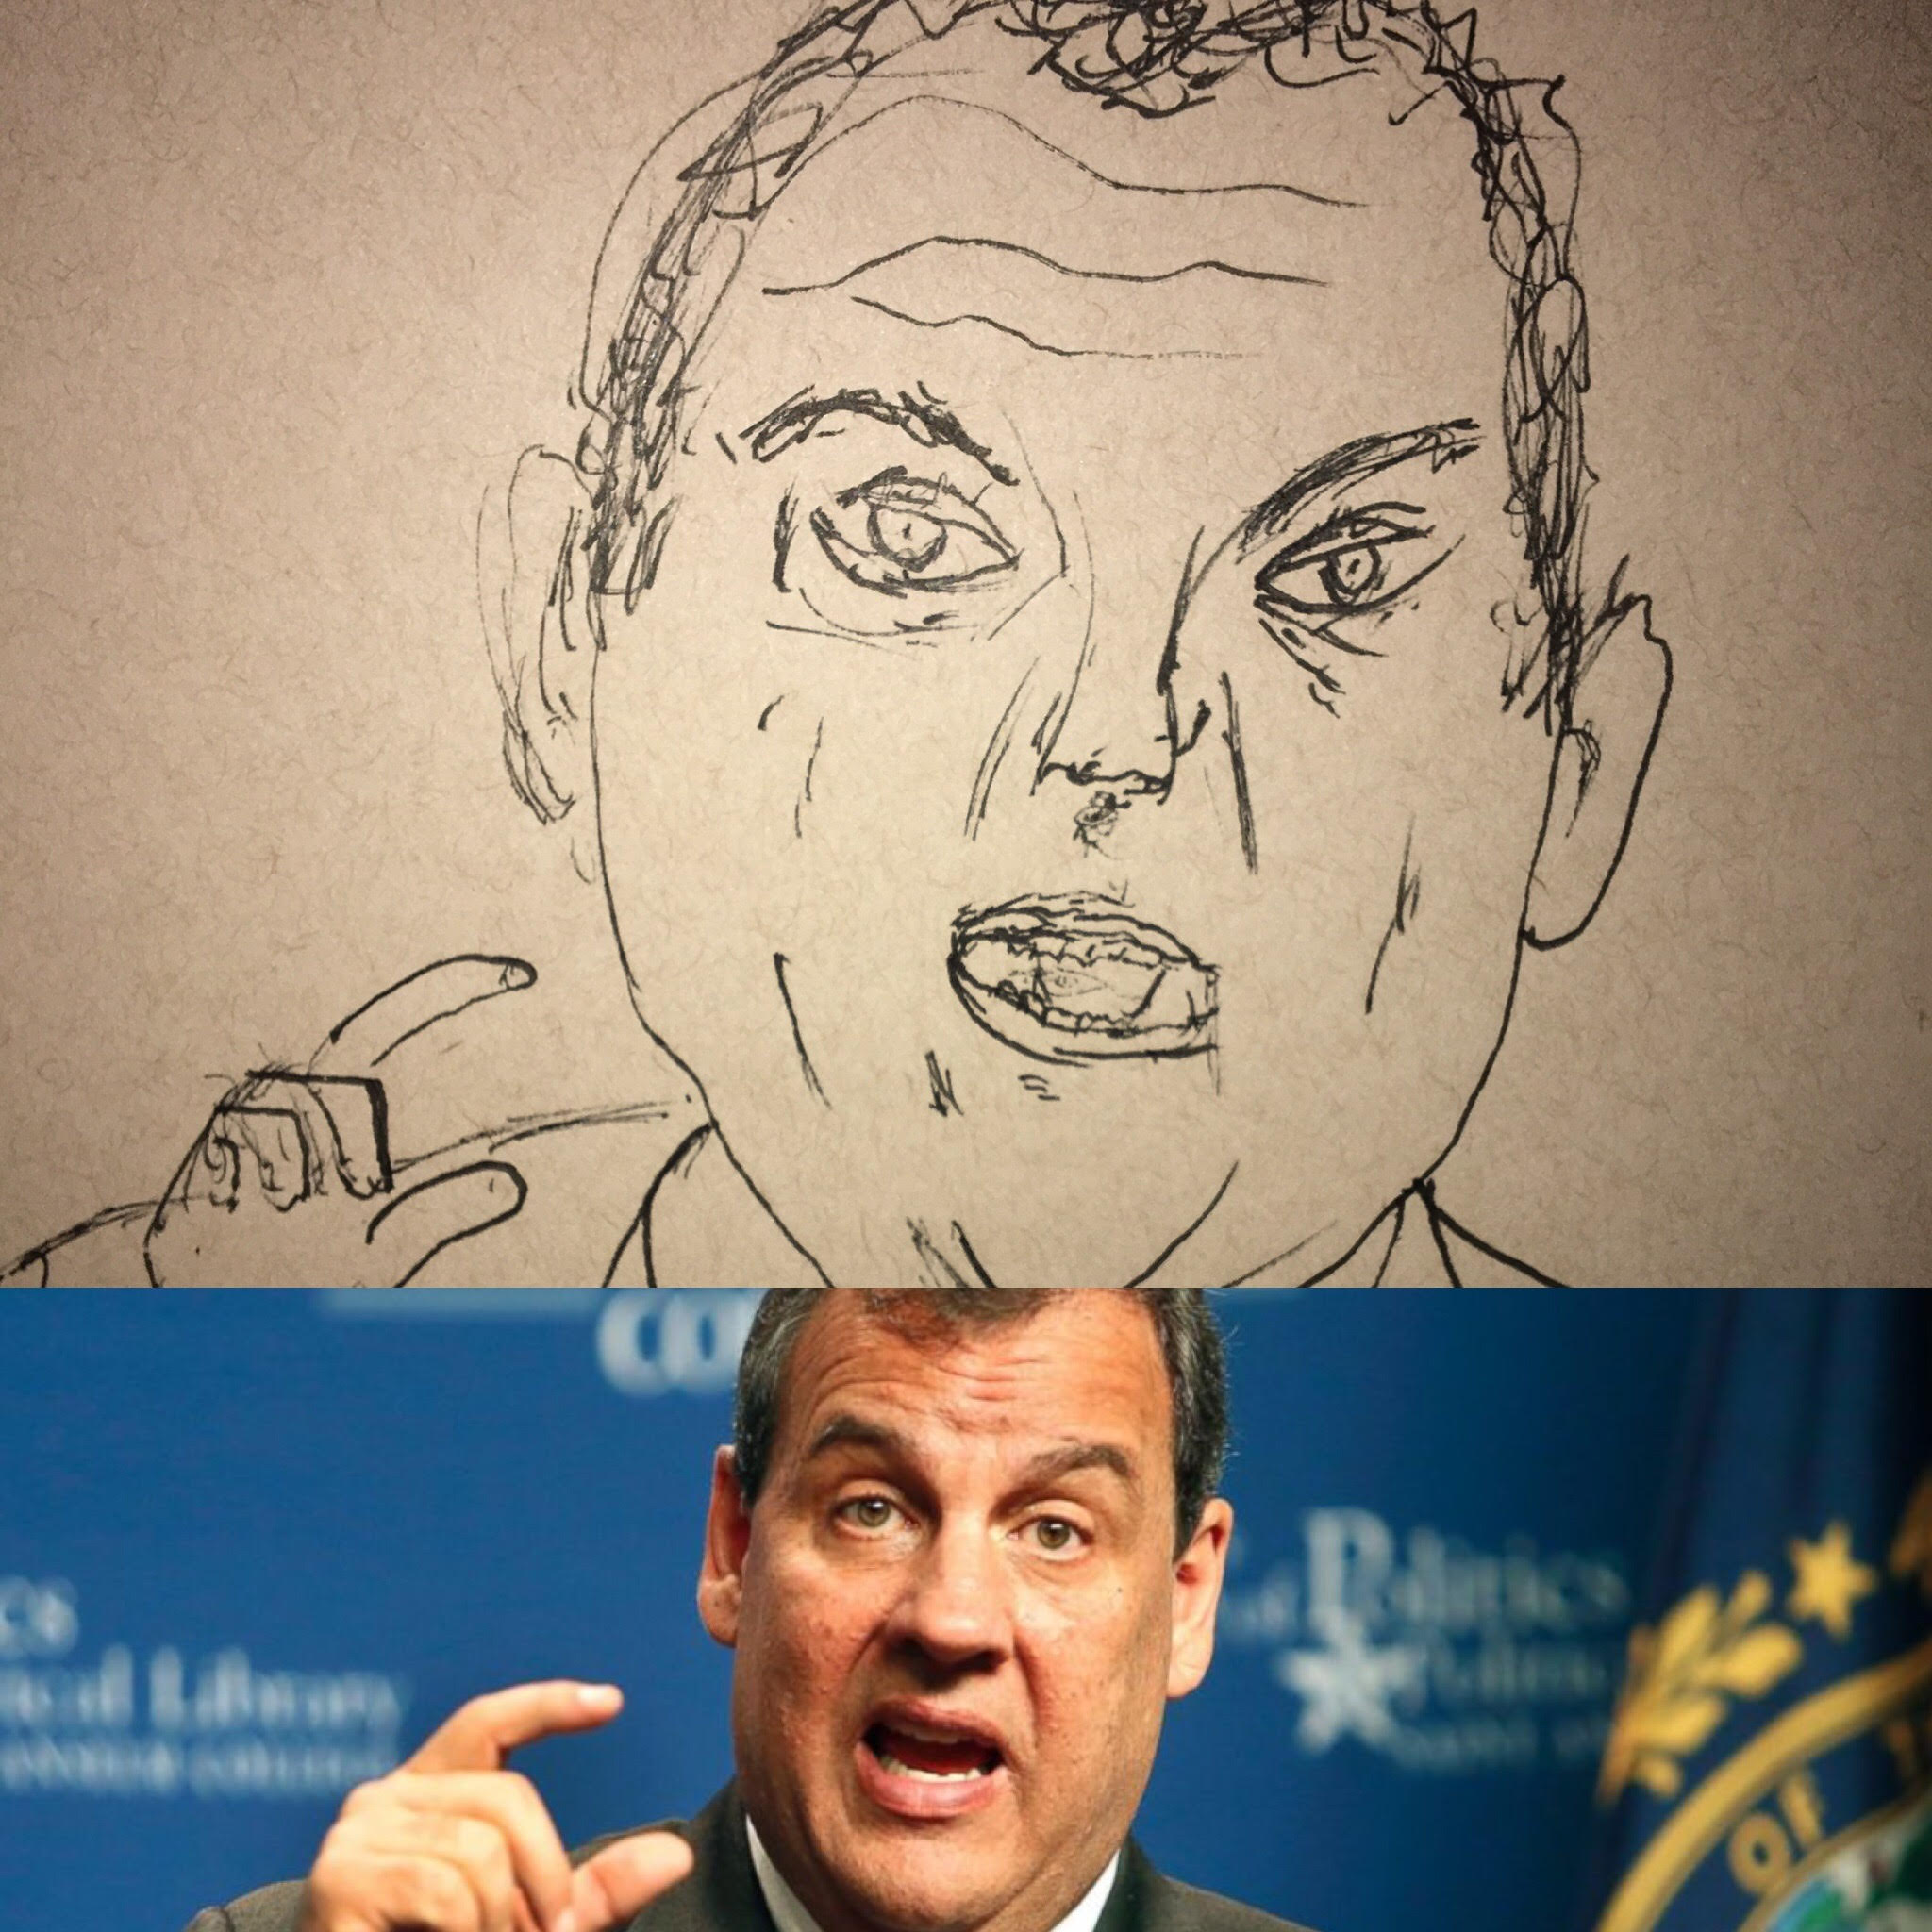 Chris Christie Ugly Sketches of Ugly People Political Satire Sketch